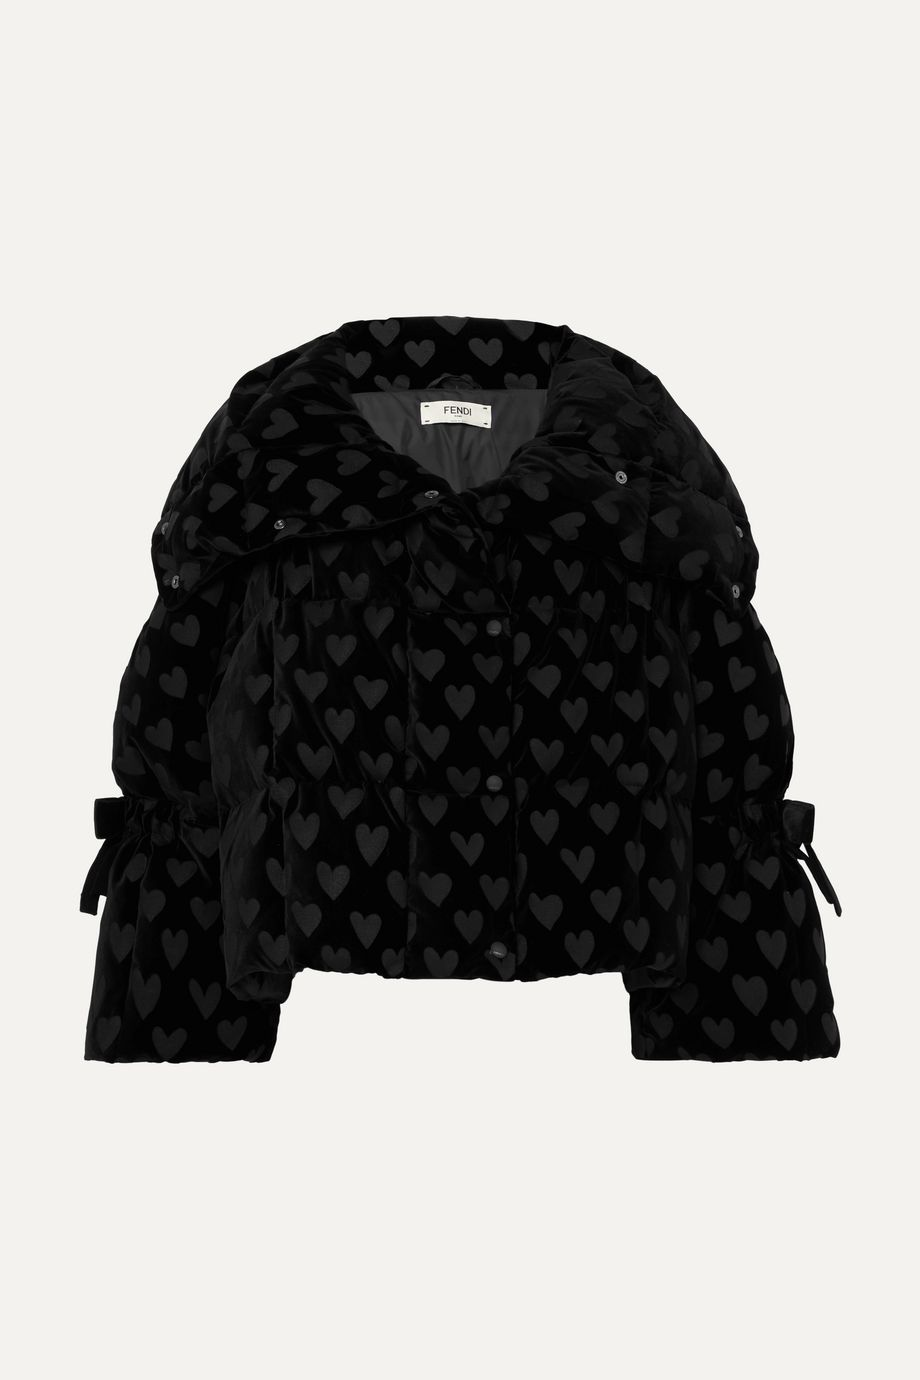 Fendi Velvet-jacquard quilted down jacket